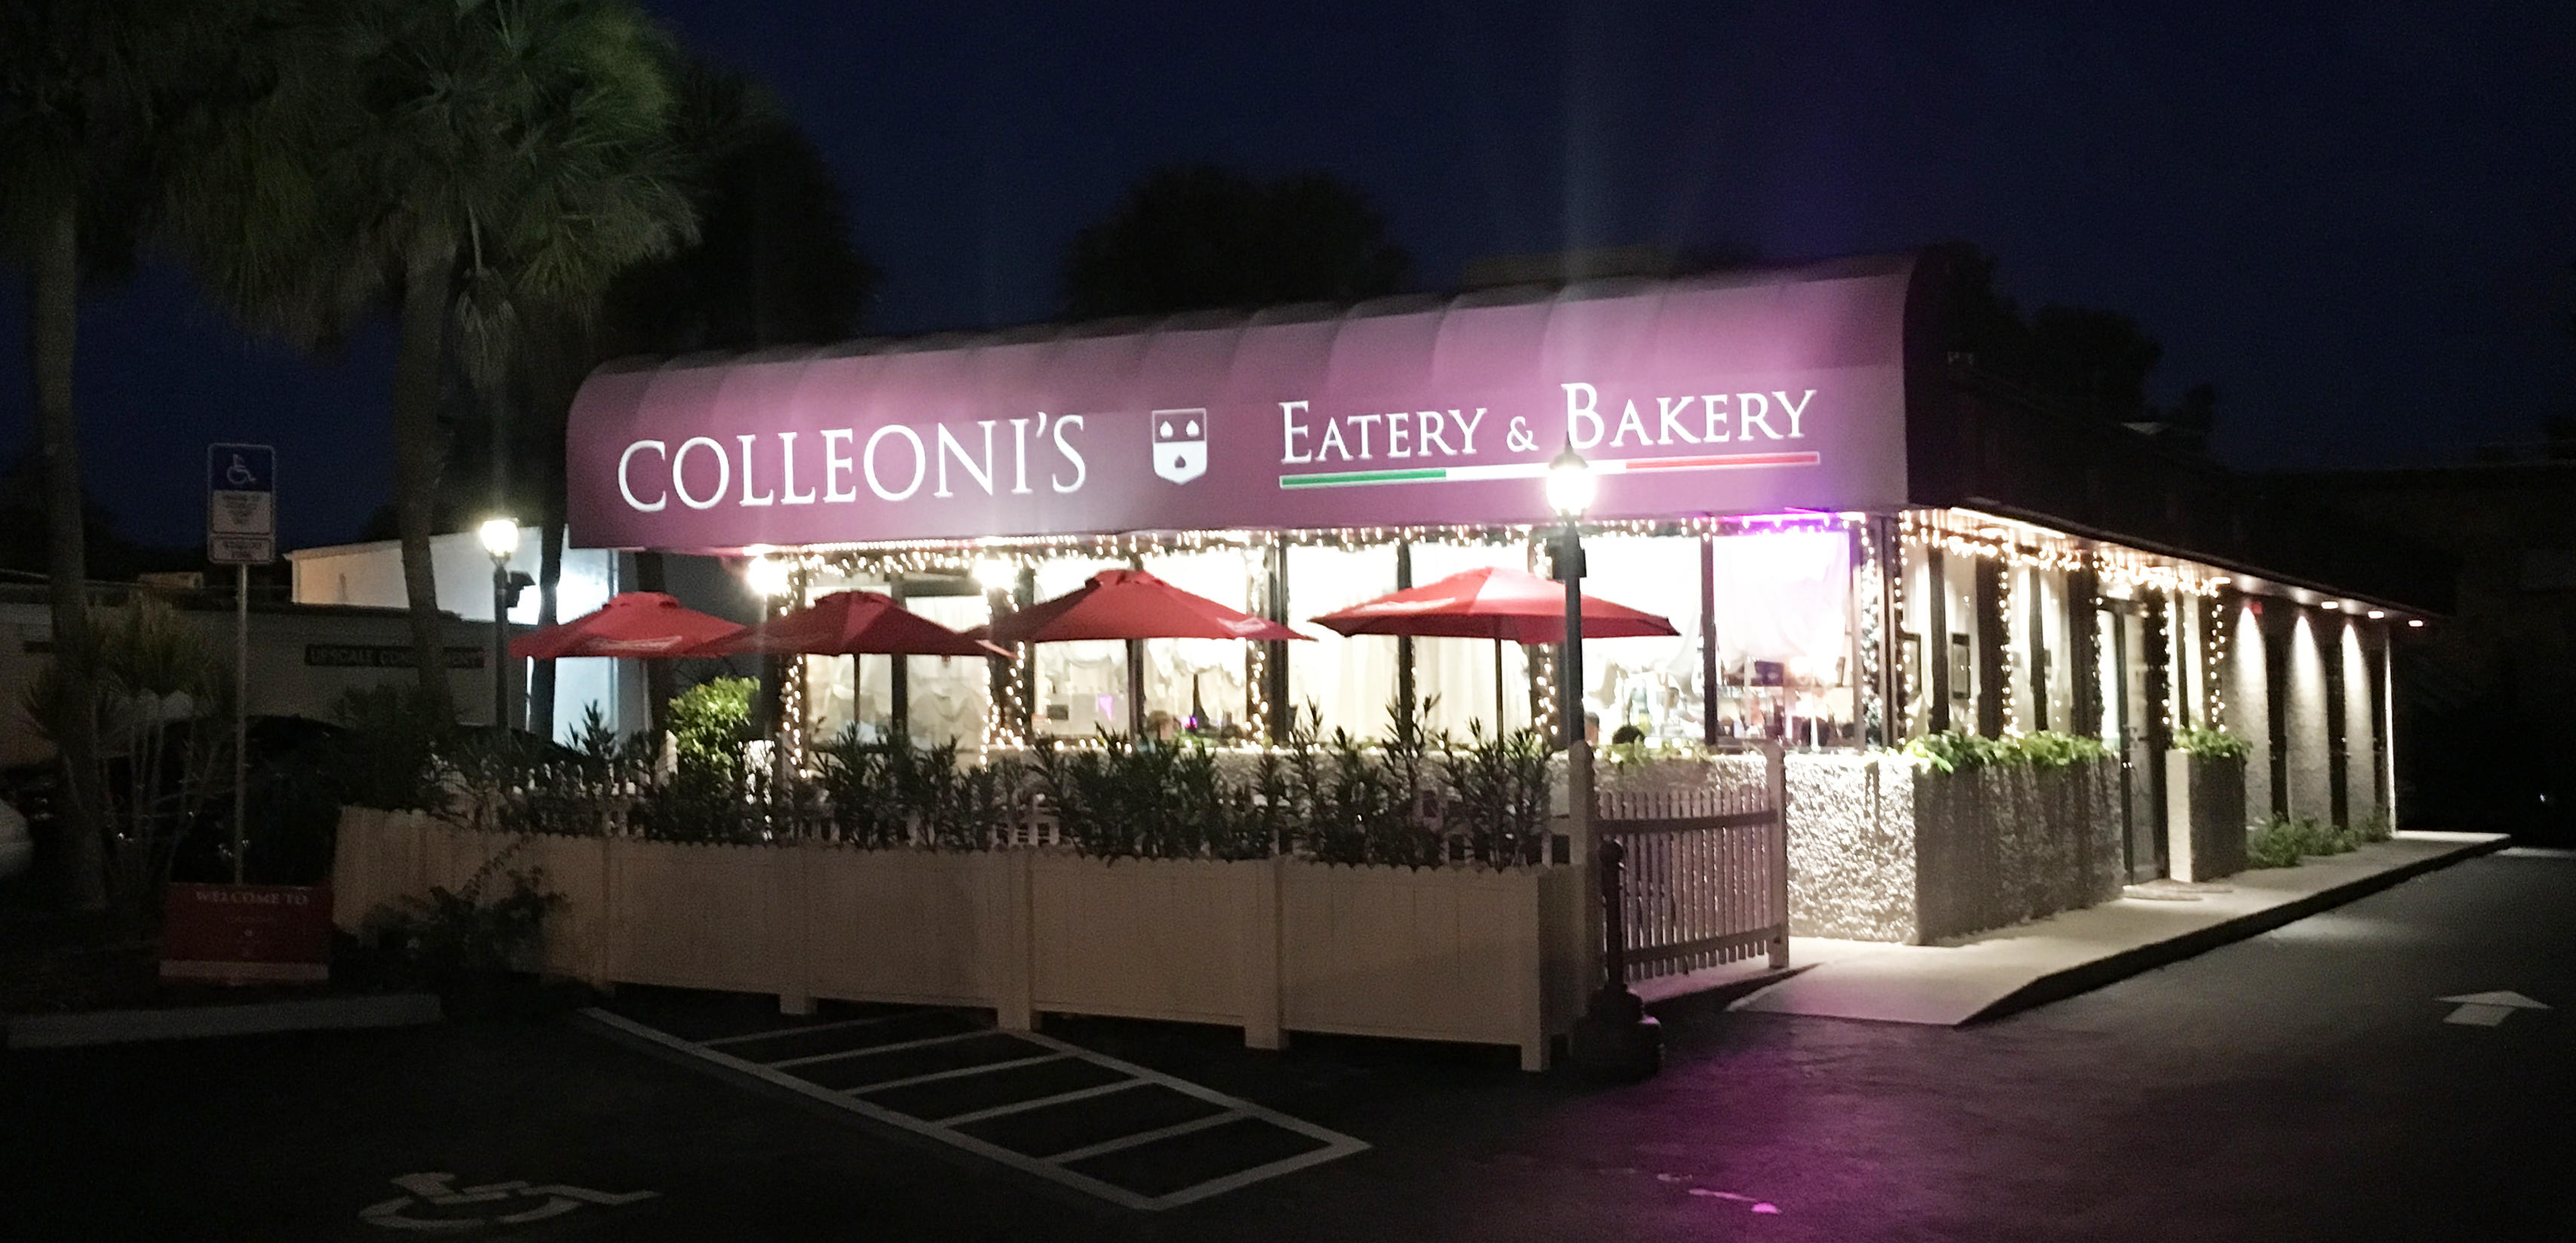 Colleoni's Eatery & Bakery image 1